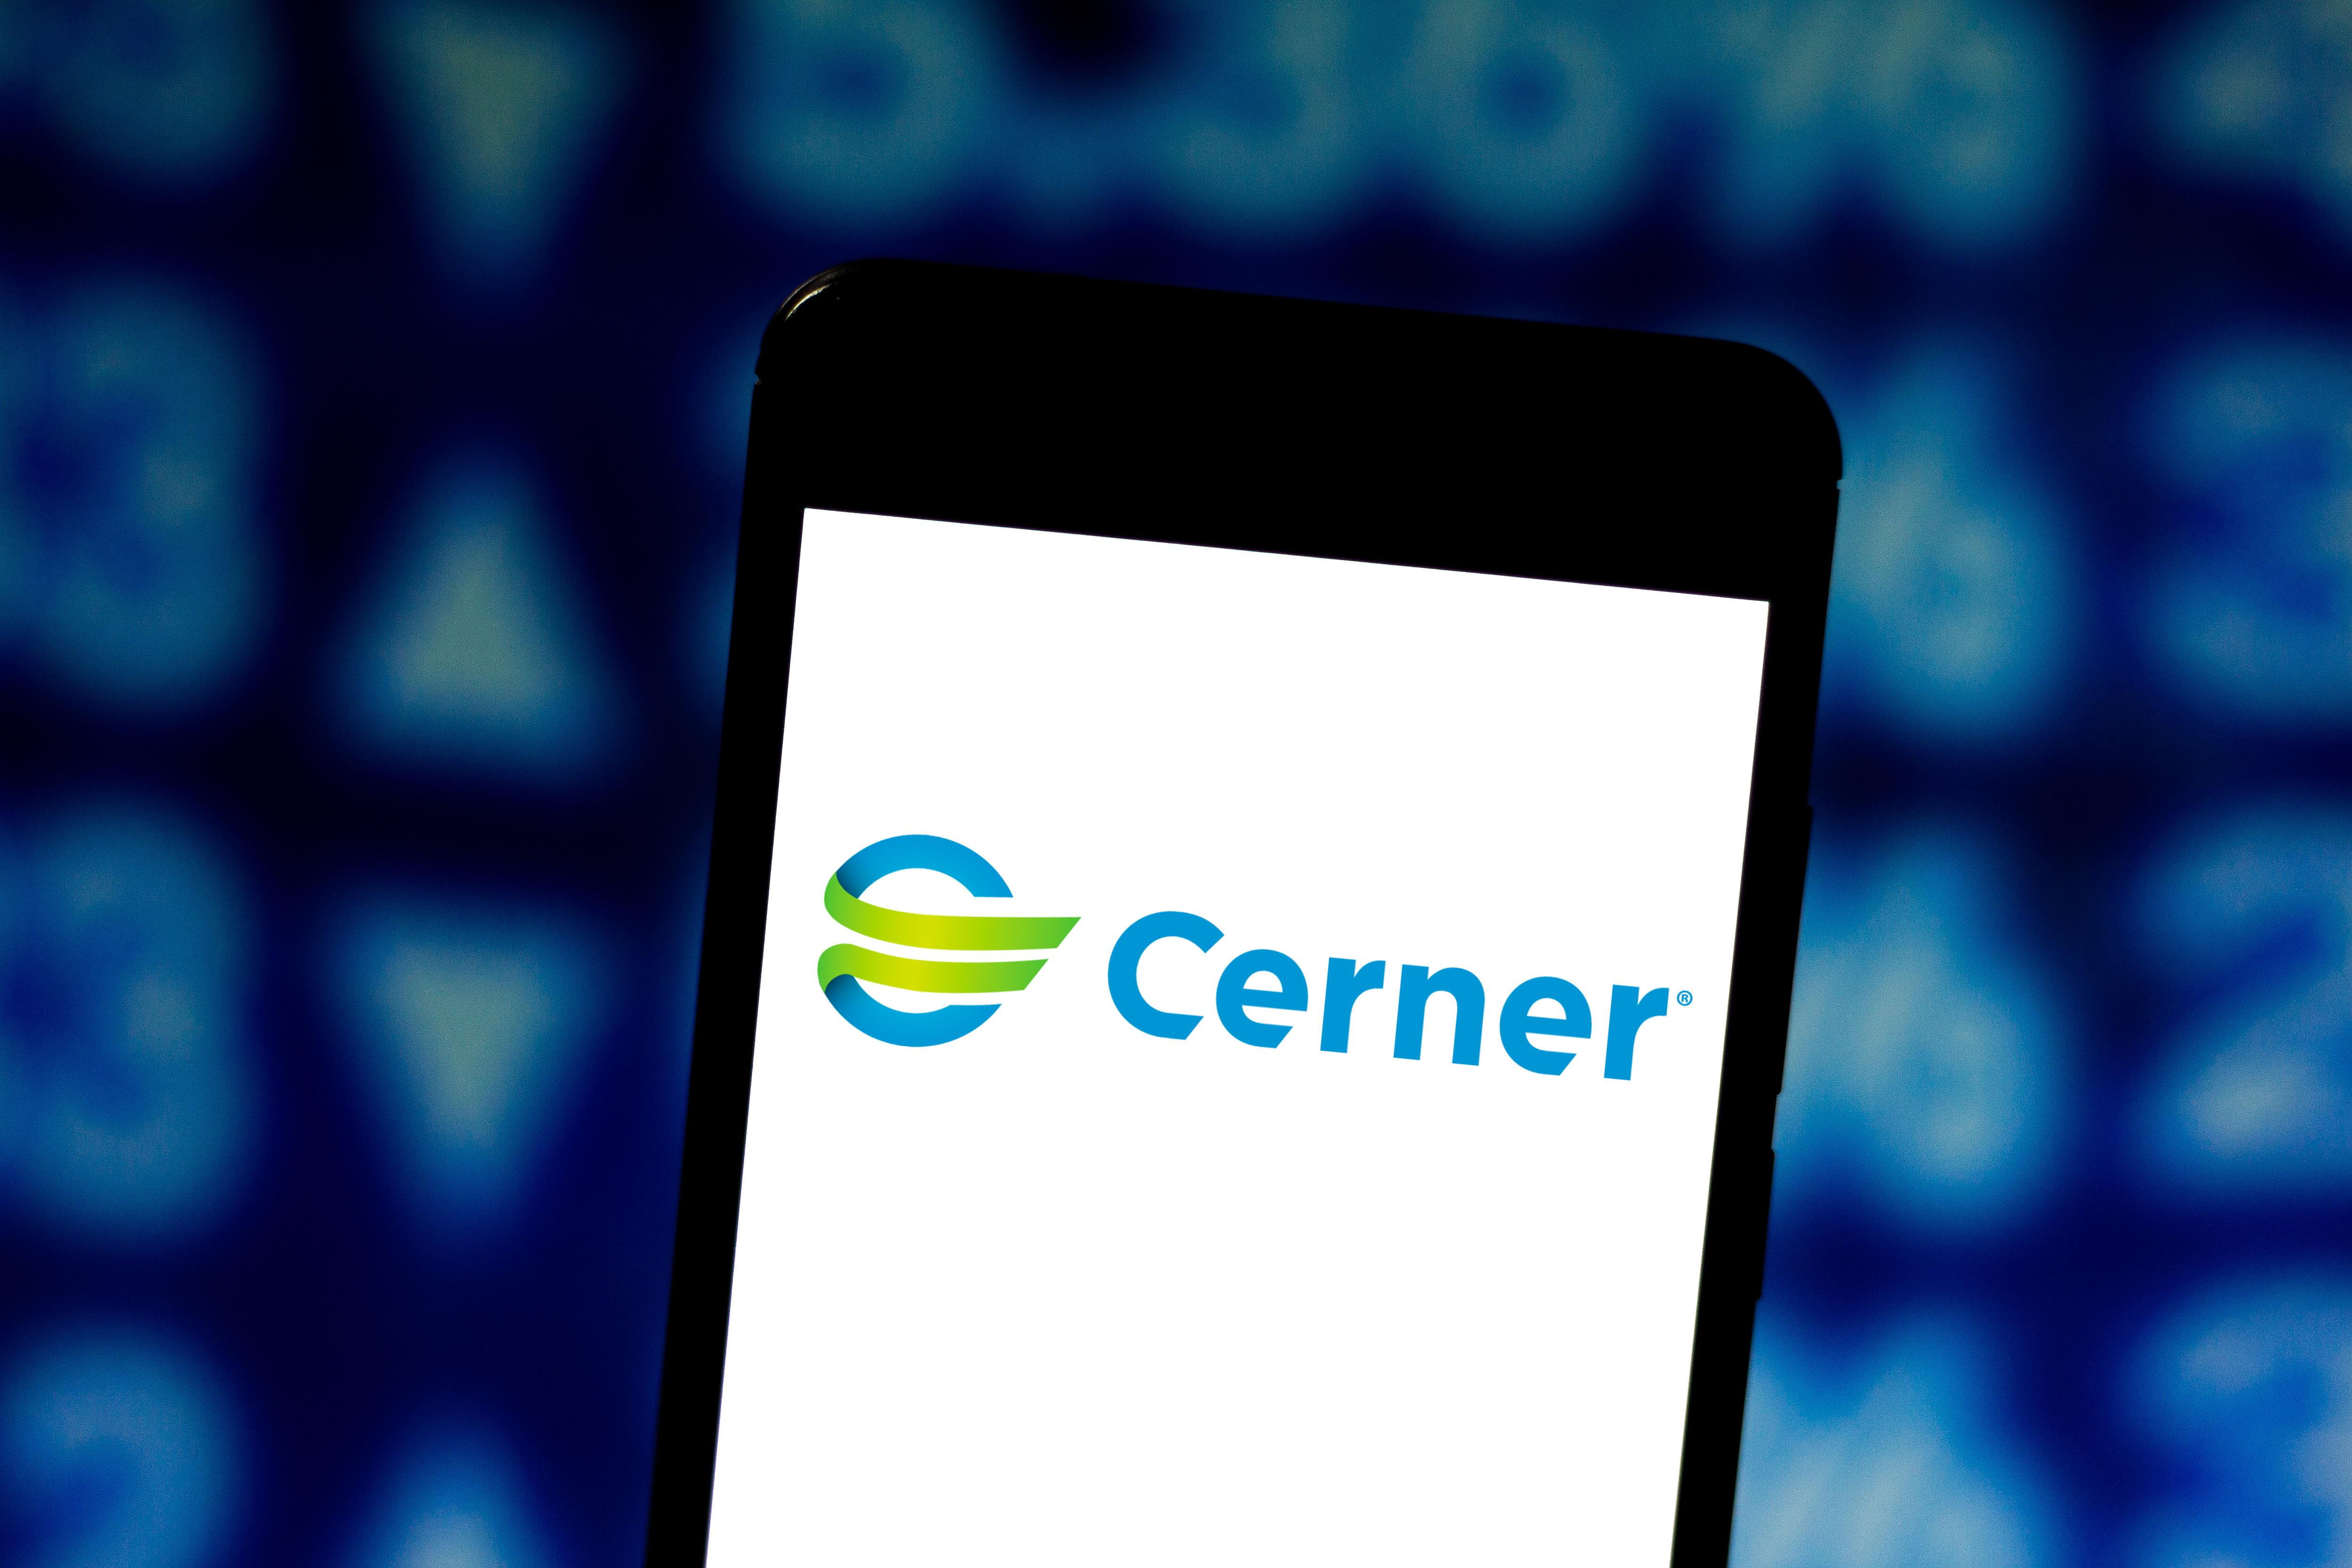 Argus Stock Research: Upgrading Cerner Corp. (CERN) to Buy